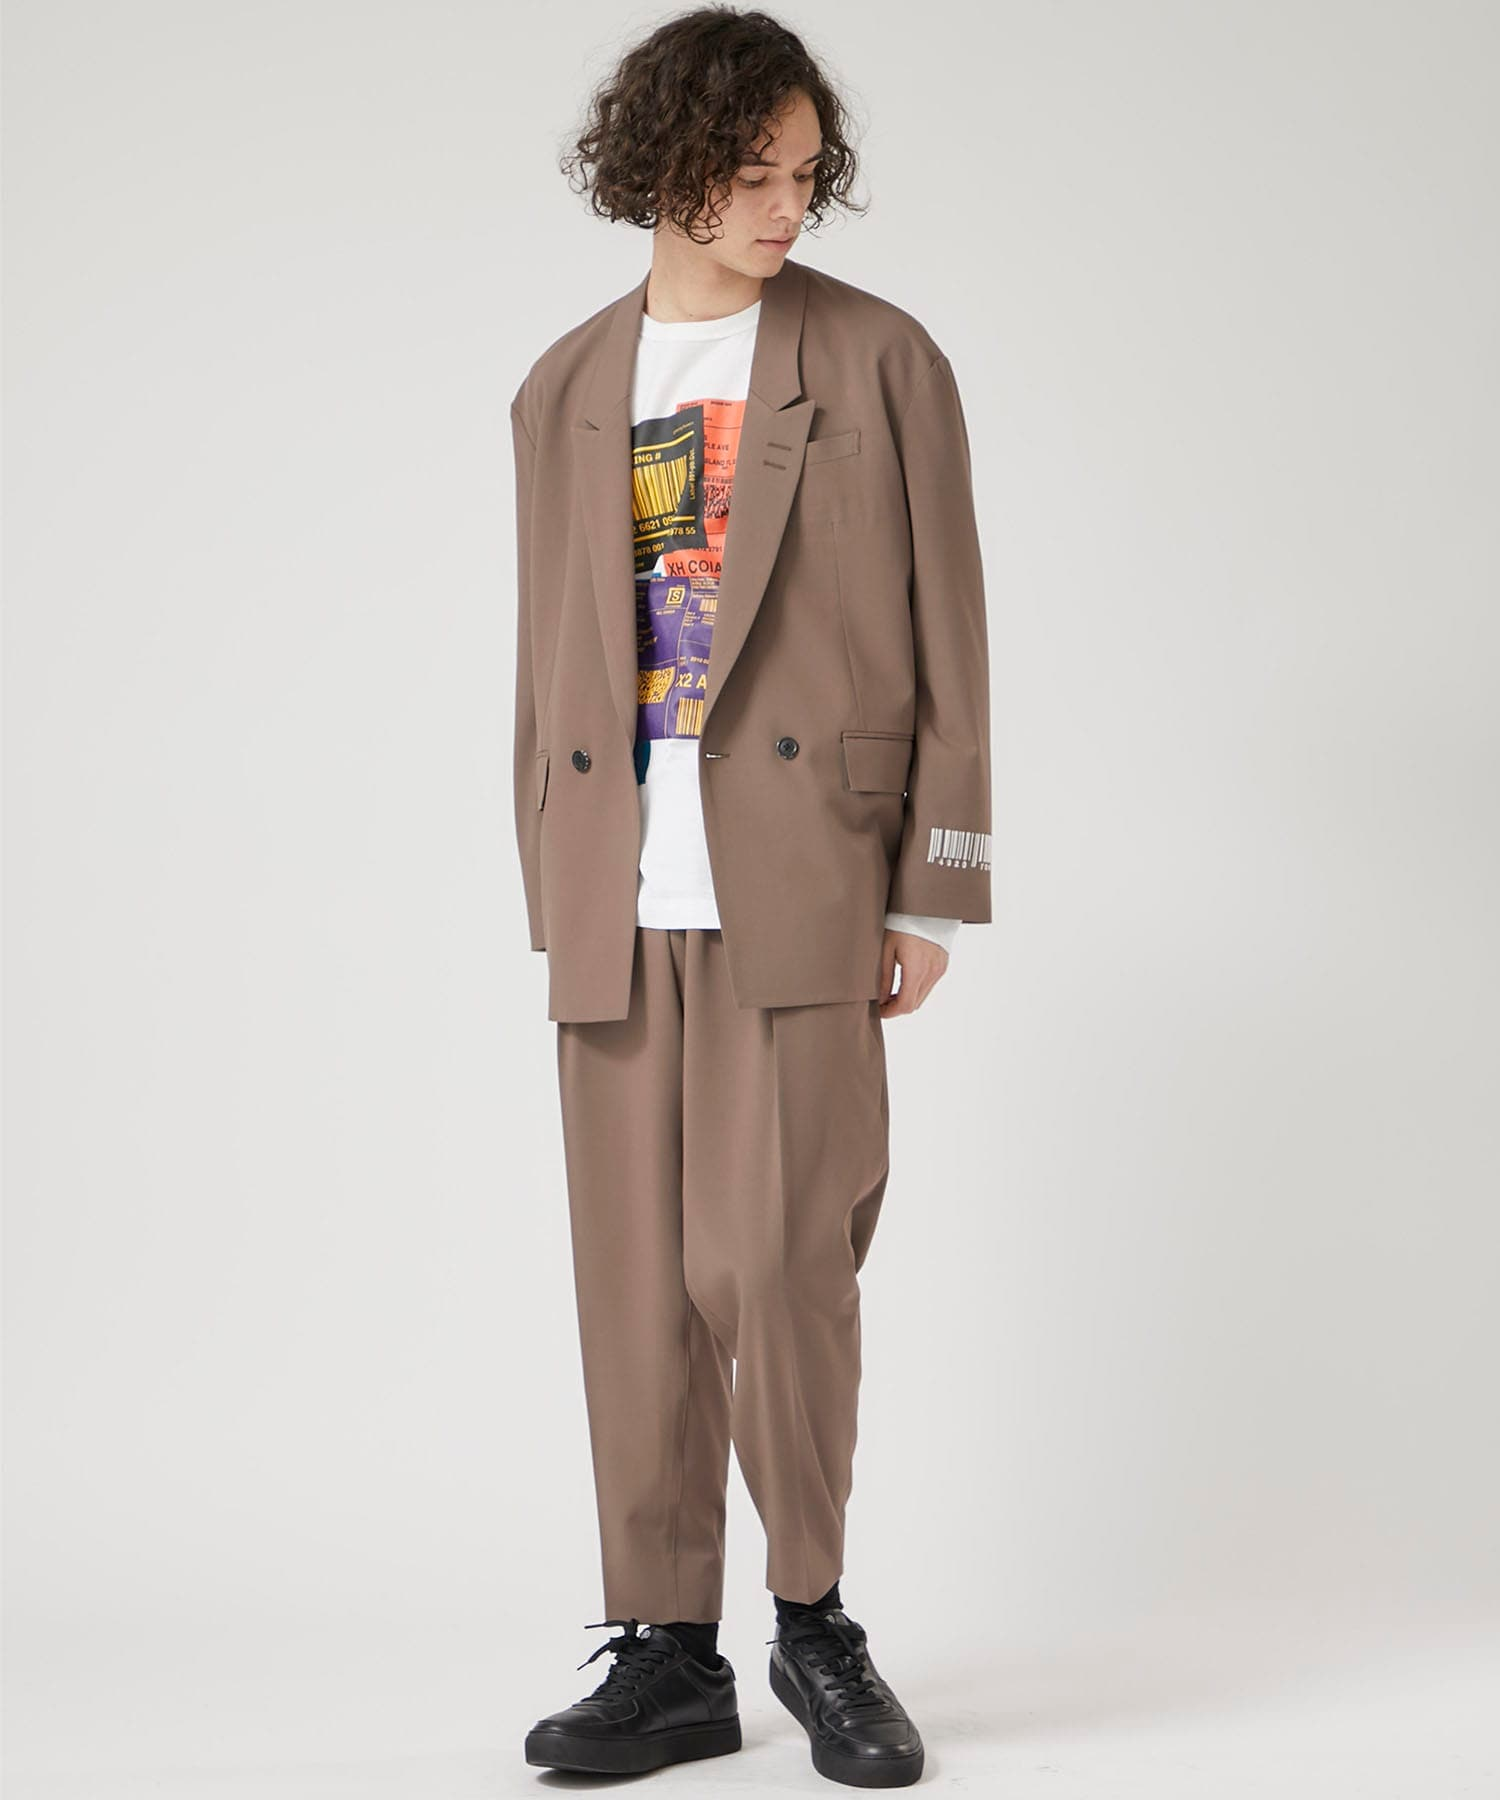 STUDIOUS限定WIDE TAPERED PANTS SHAREEF